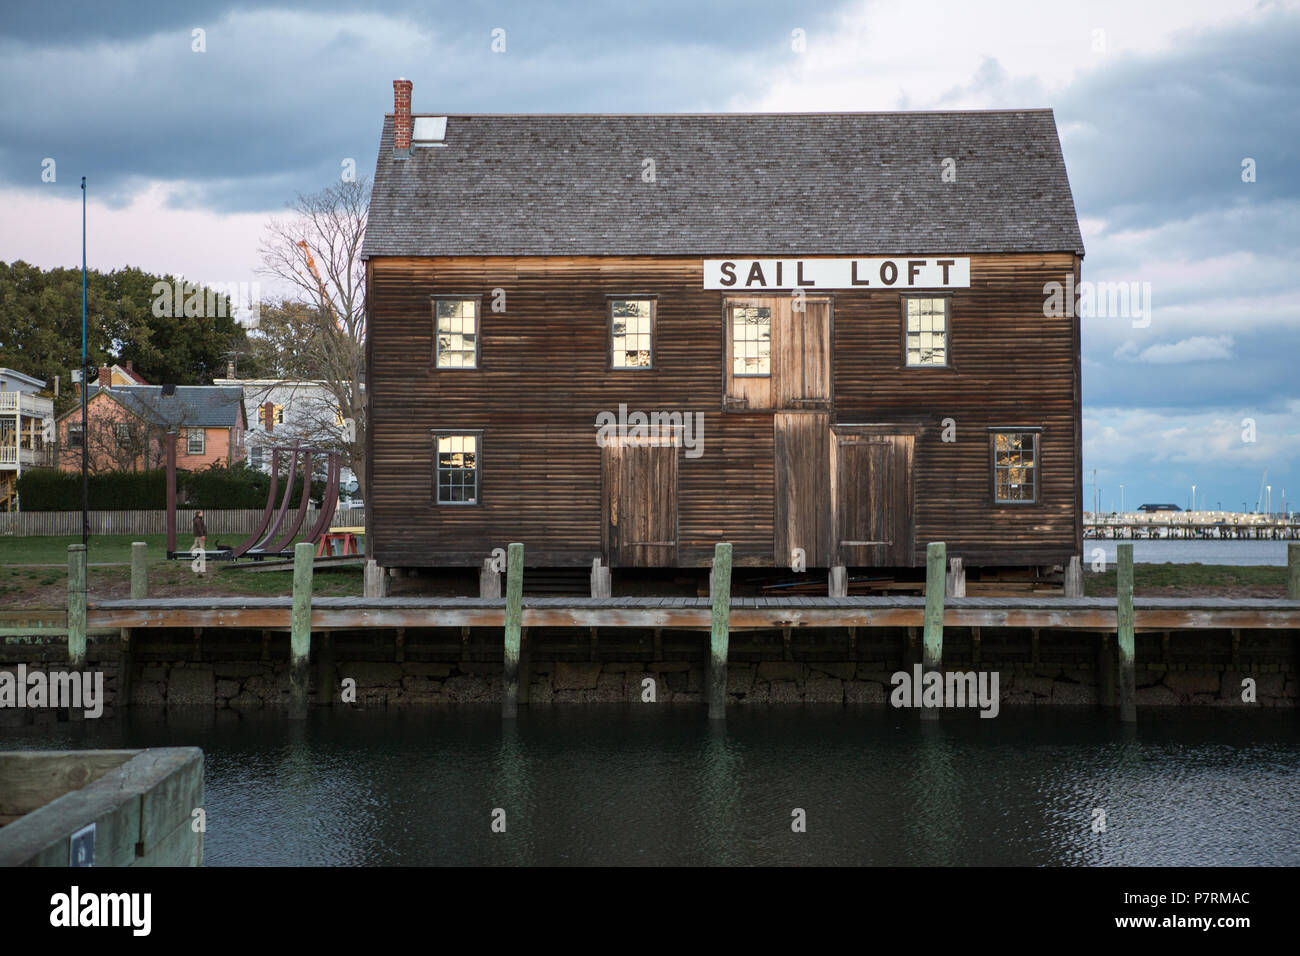 Loft in the port of Salem, Massachusetts - Stock Image